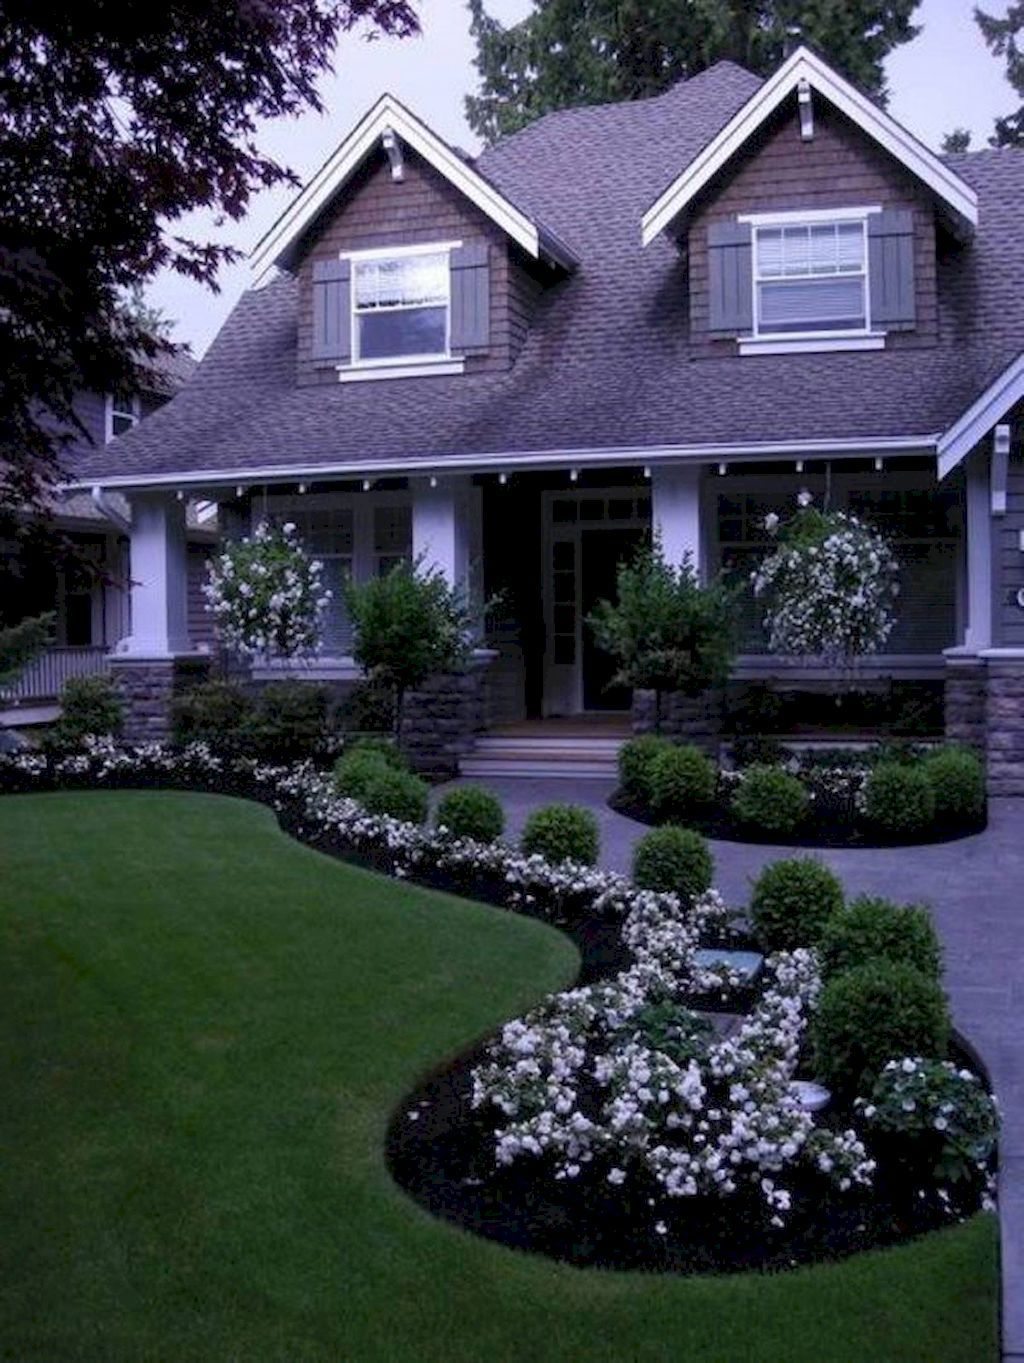 40 beautiful front yard landscaping ideas yard for Front lawn design ideas